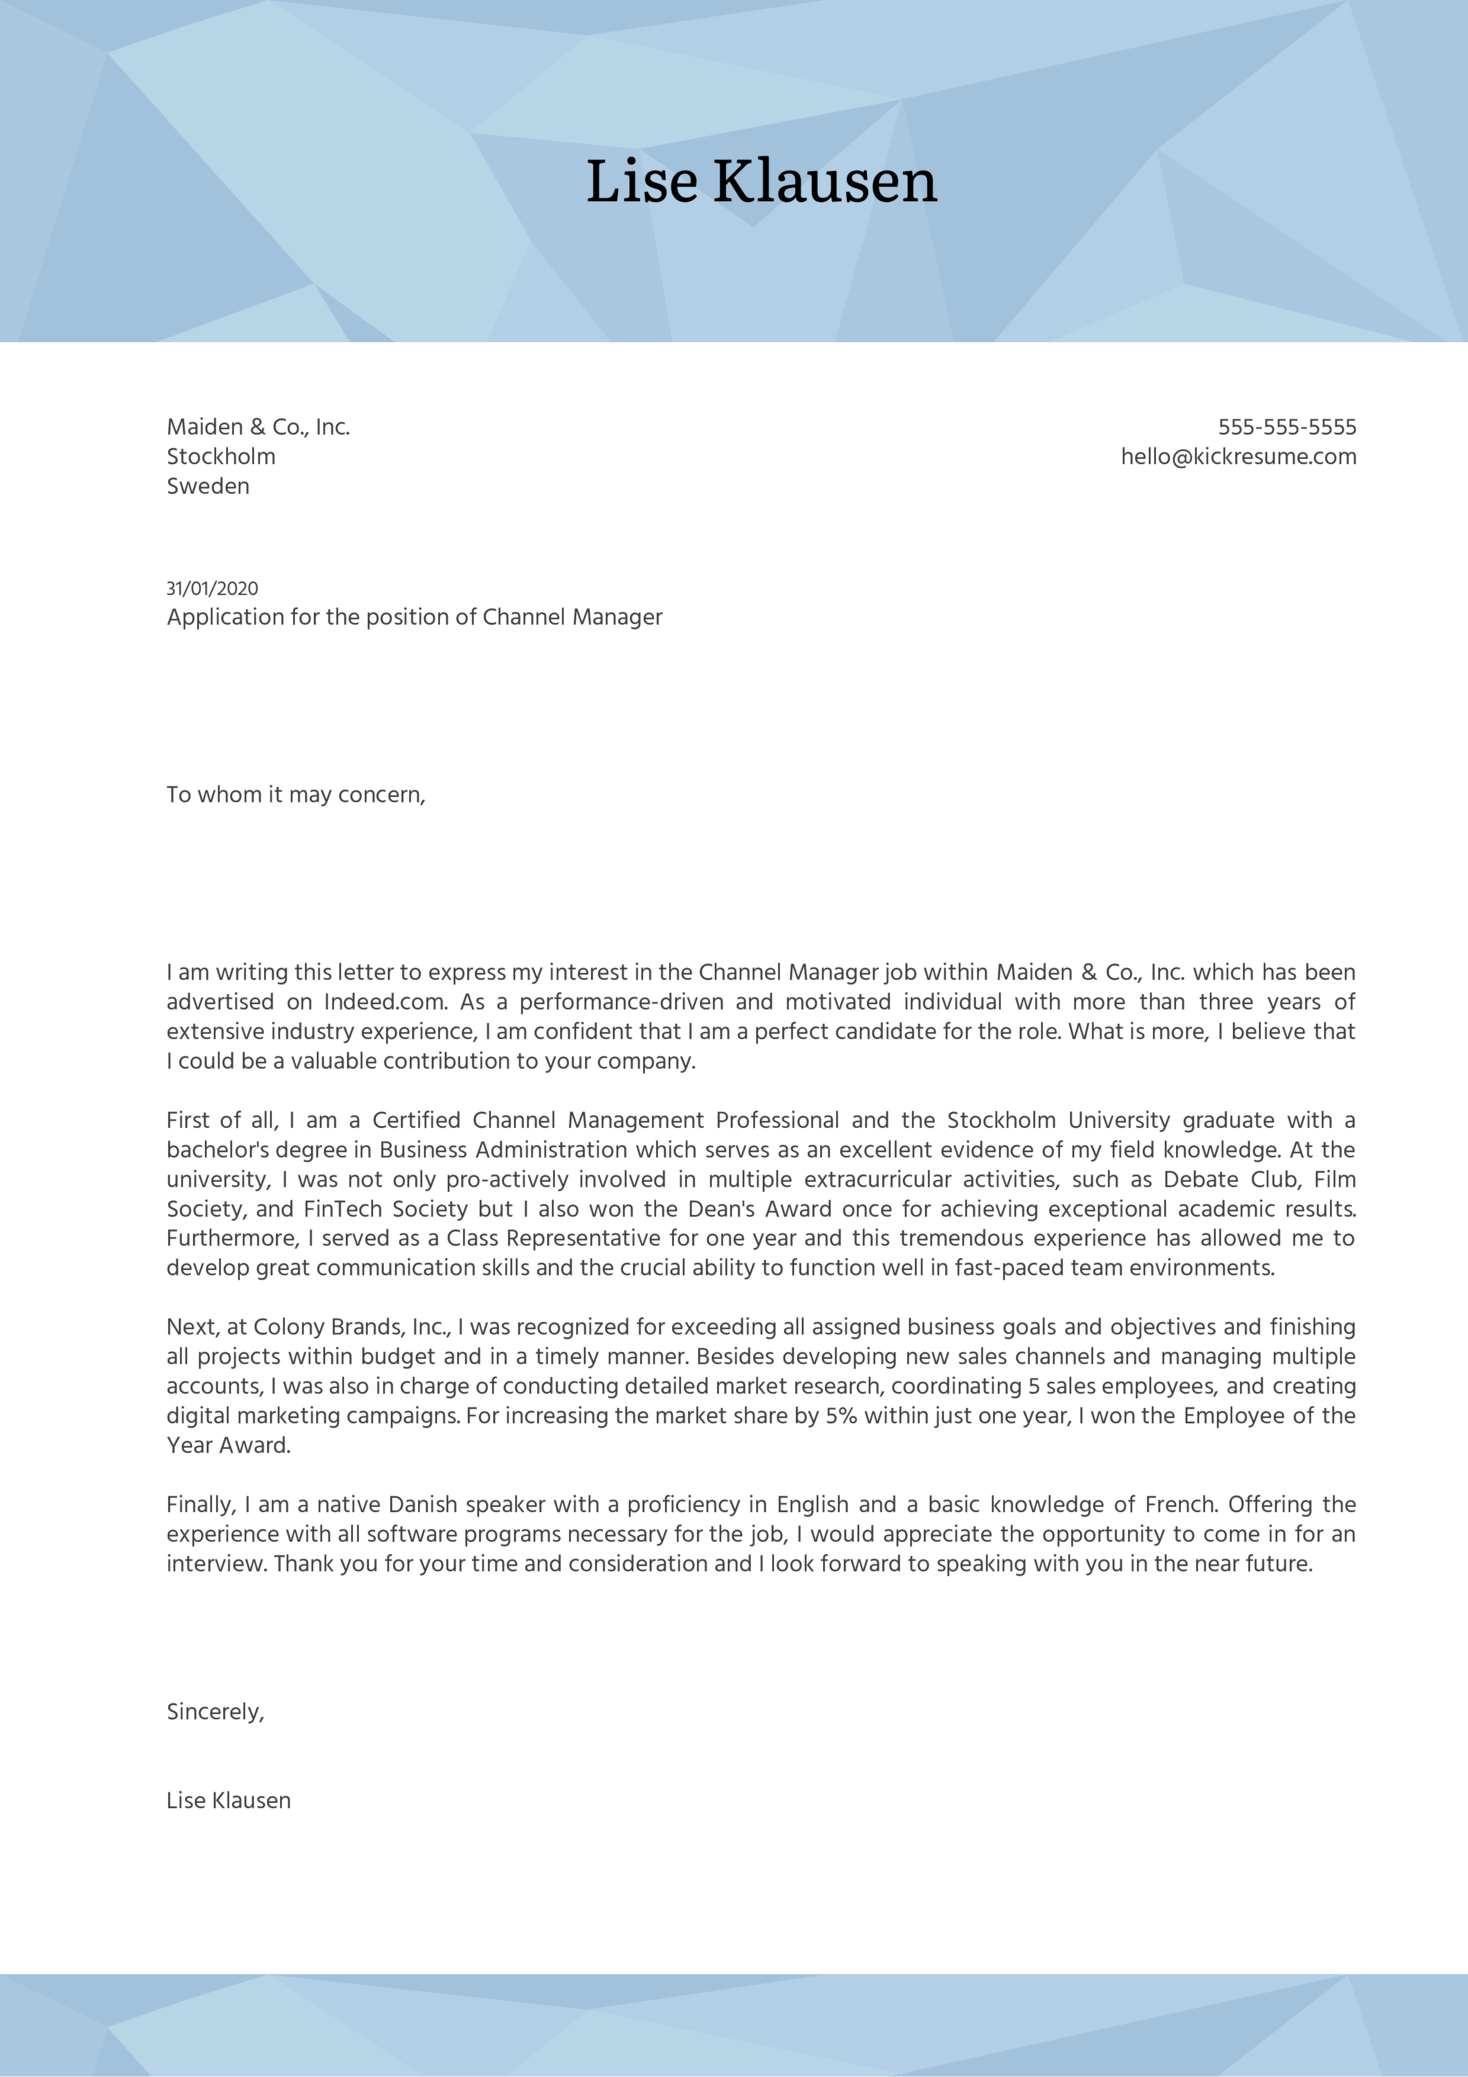 Channel Manager Cover Letter Example